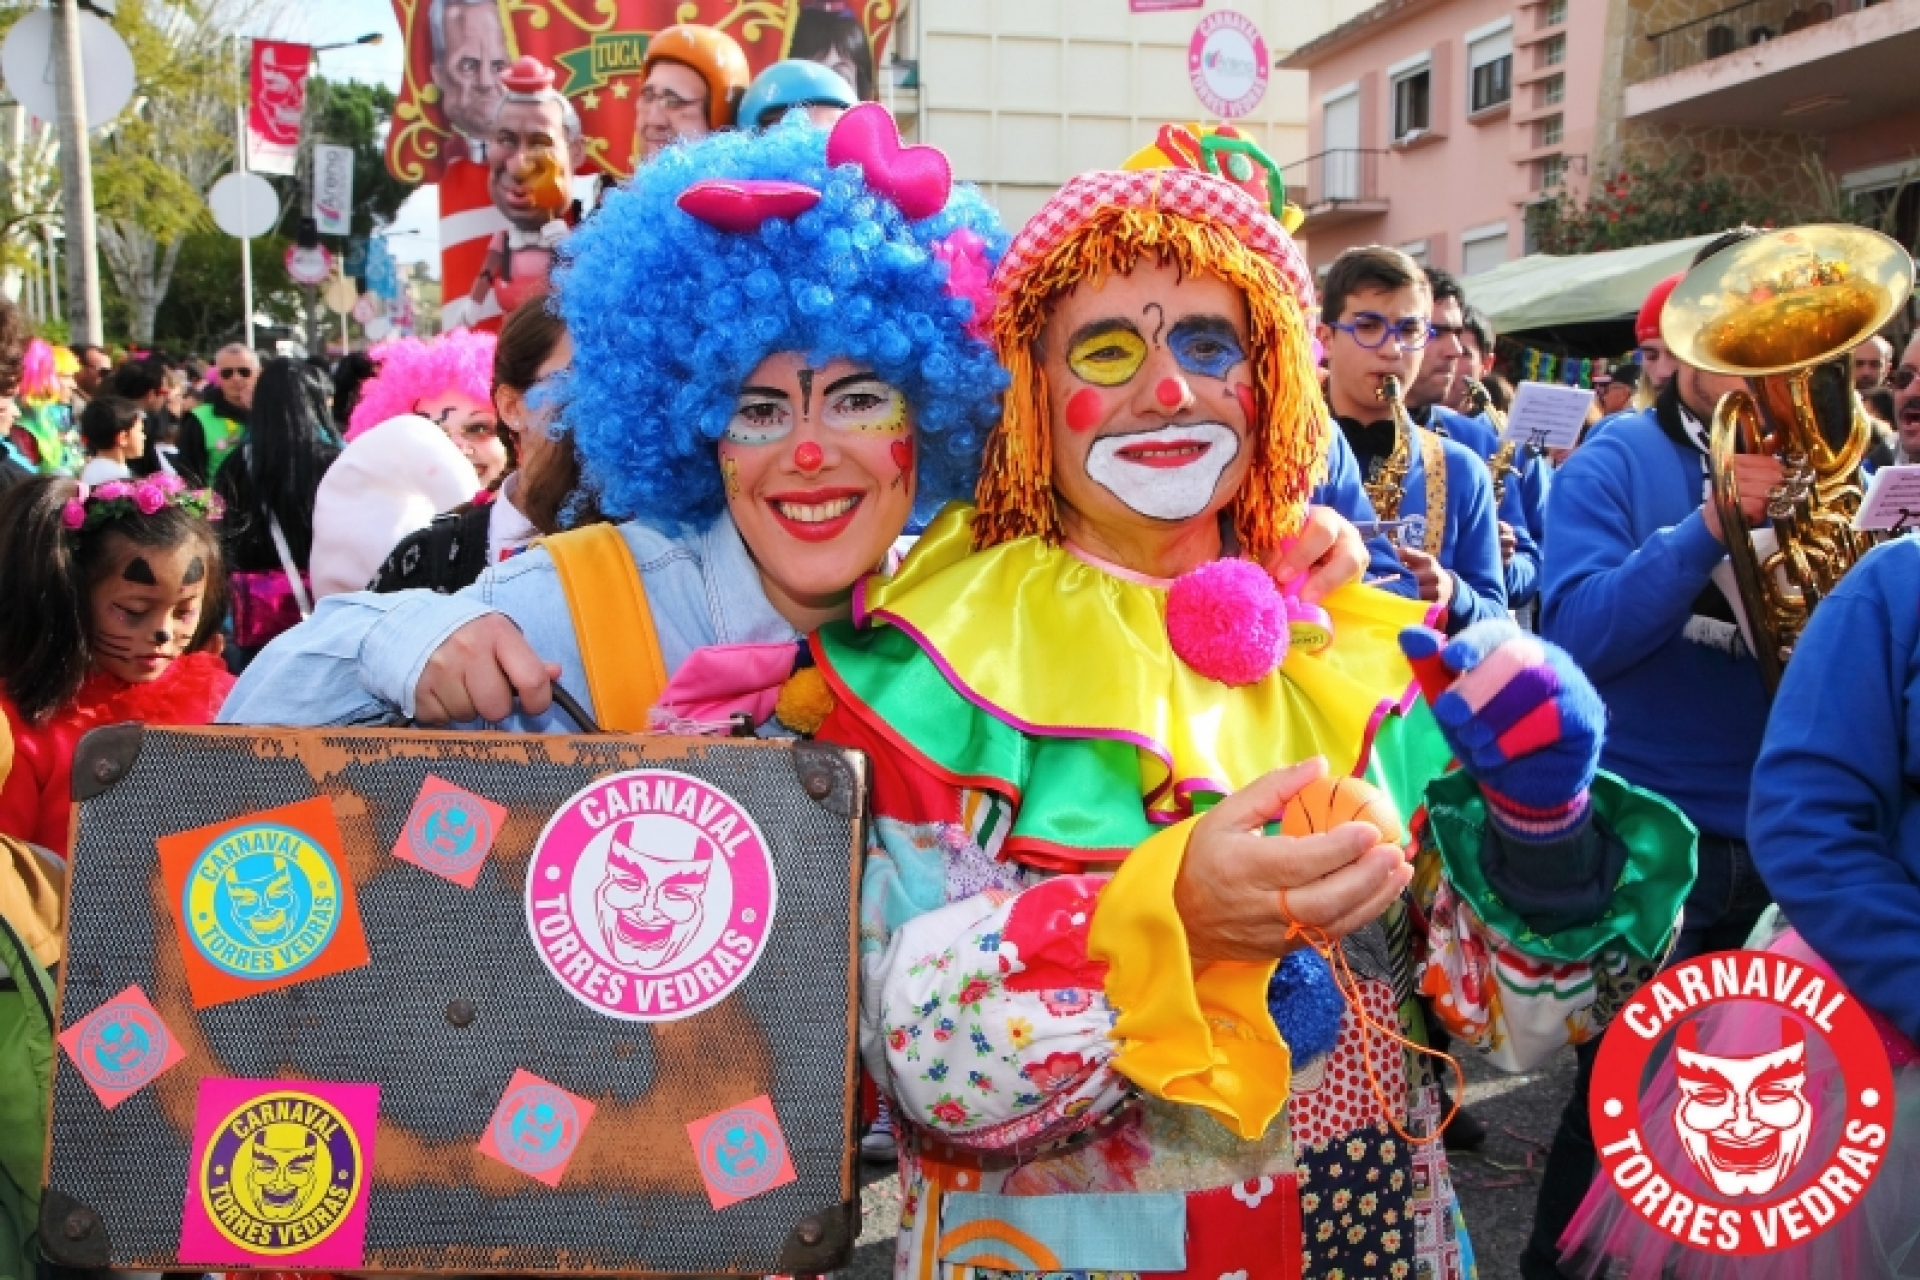 LisboaCool_Blog_NEARBY | TOUR GUIDE FOR CARNAVAL DE TORRES VEDRAS